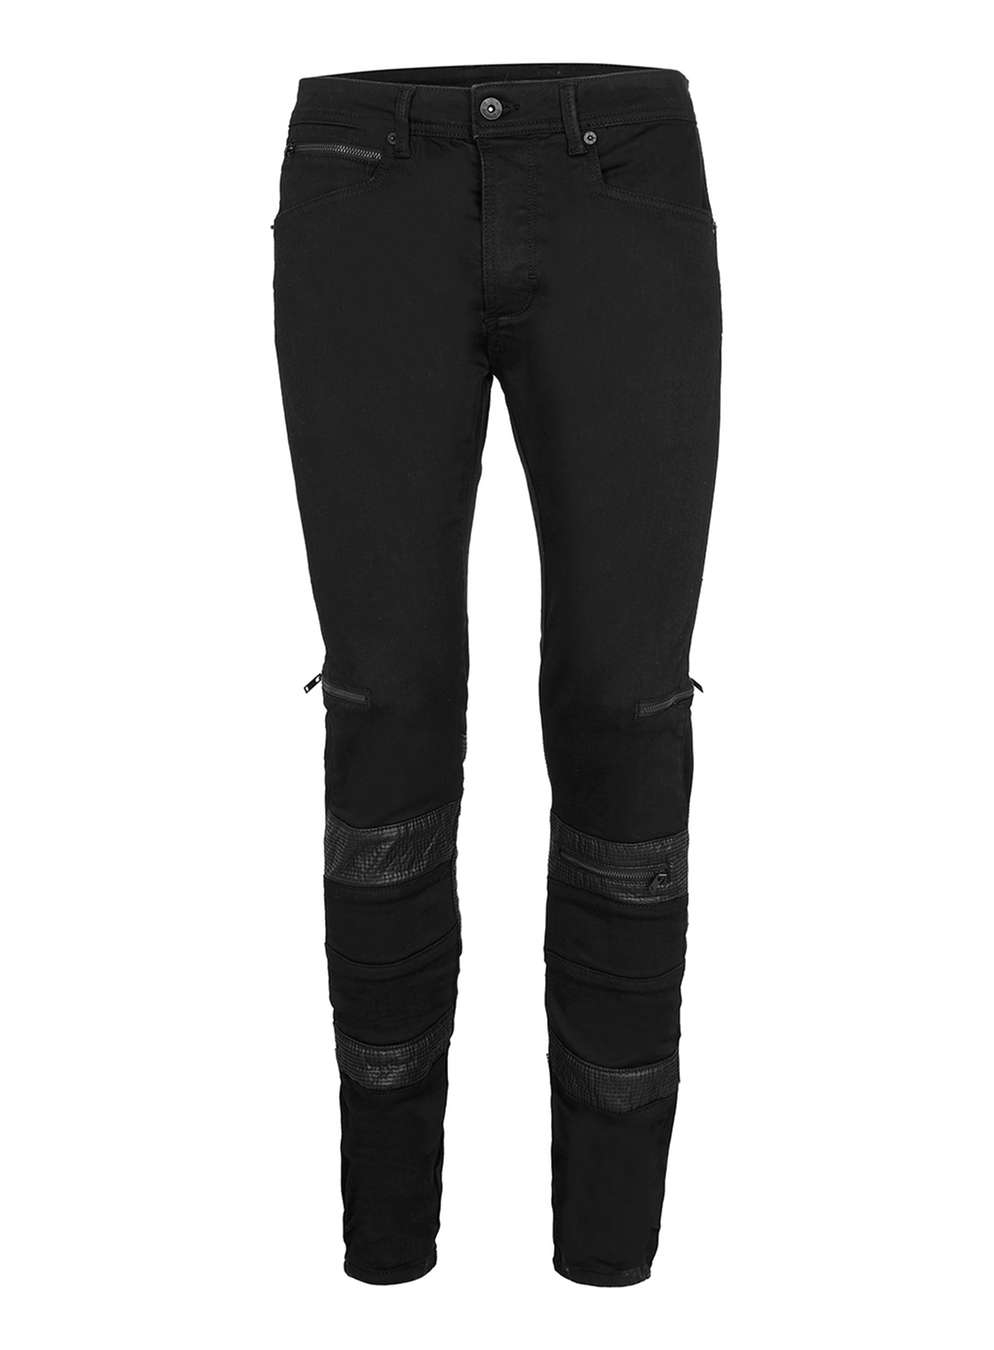 Shop for black zipper pants online at Target. Free shipping on purchases over $35 and save 5% every day with your Target REDcard.